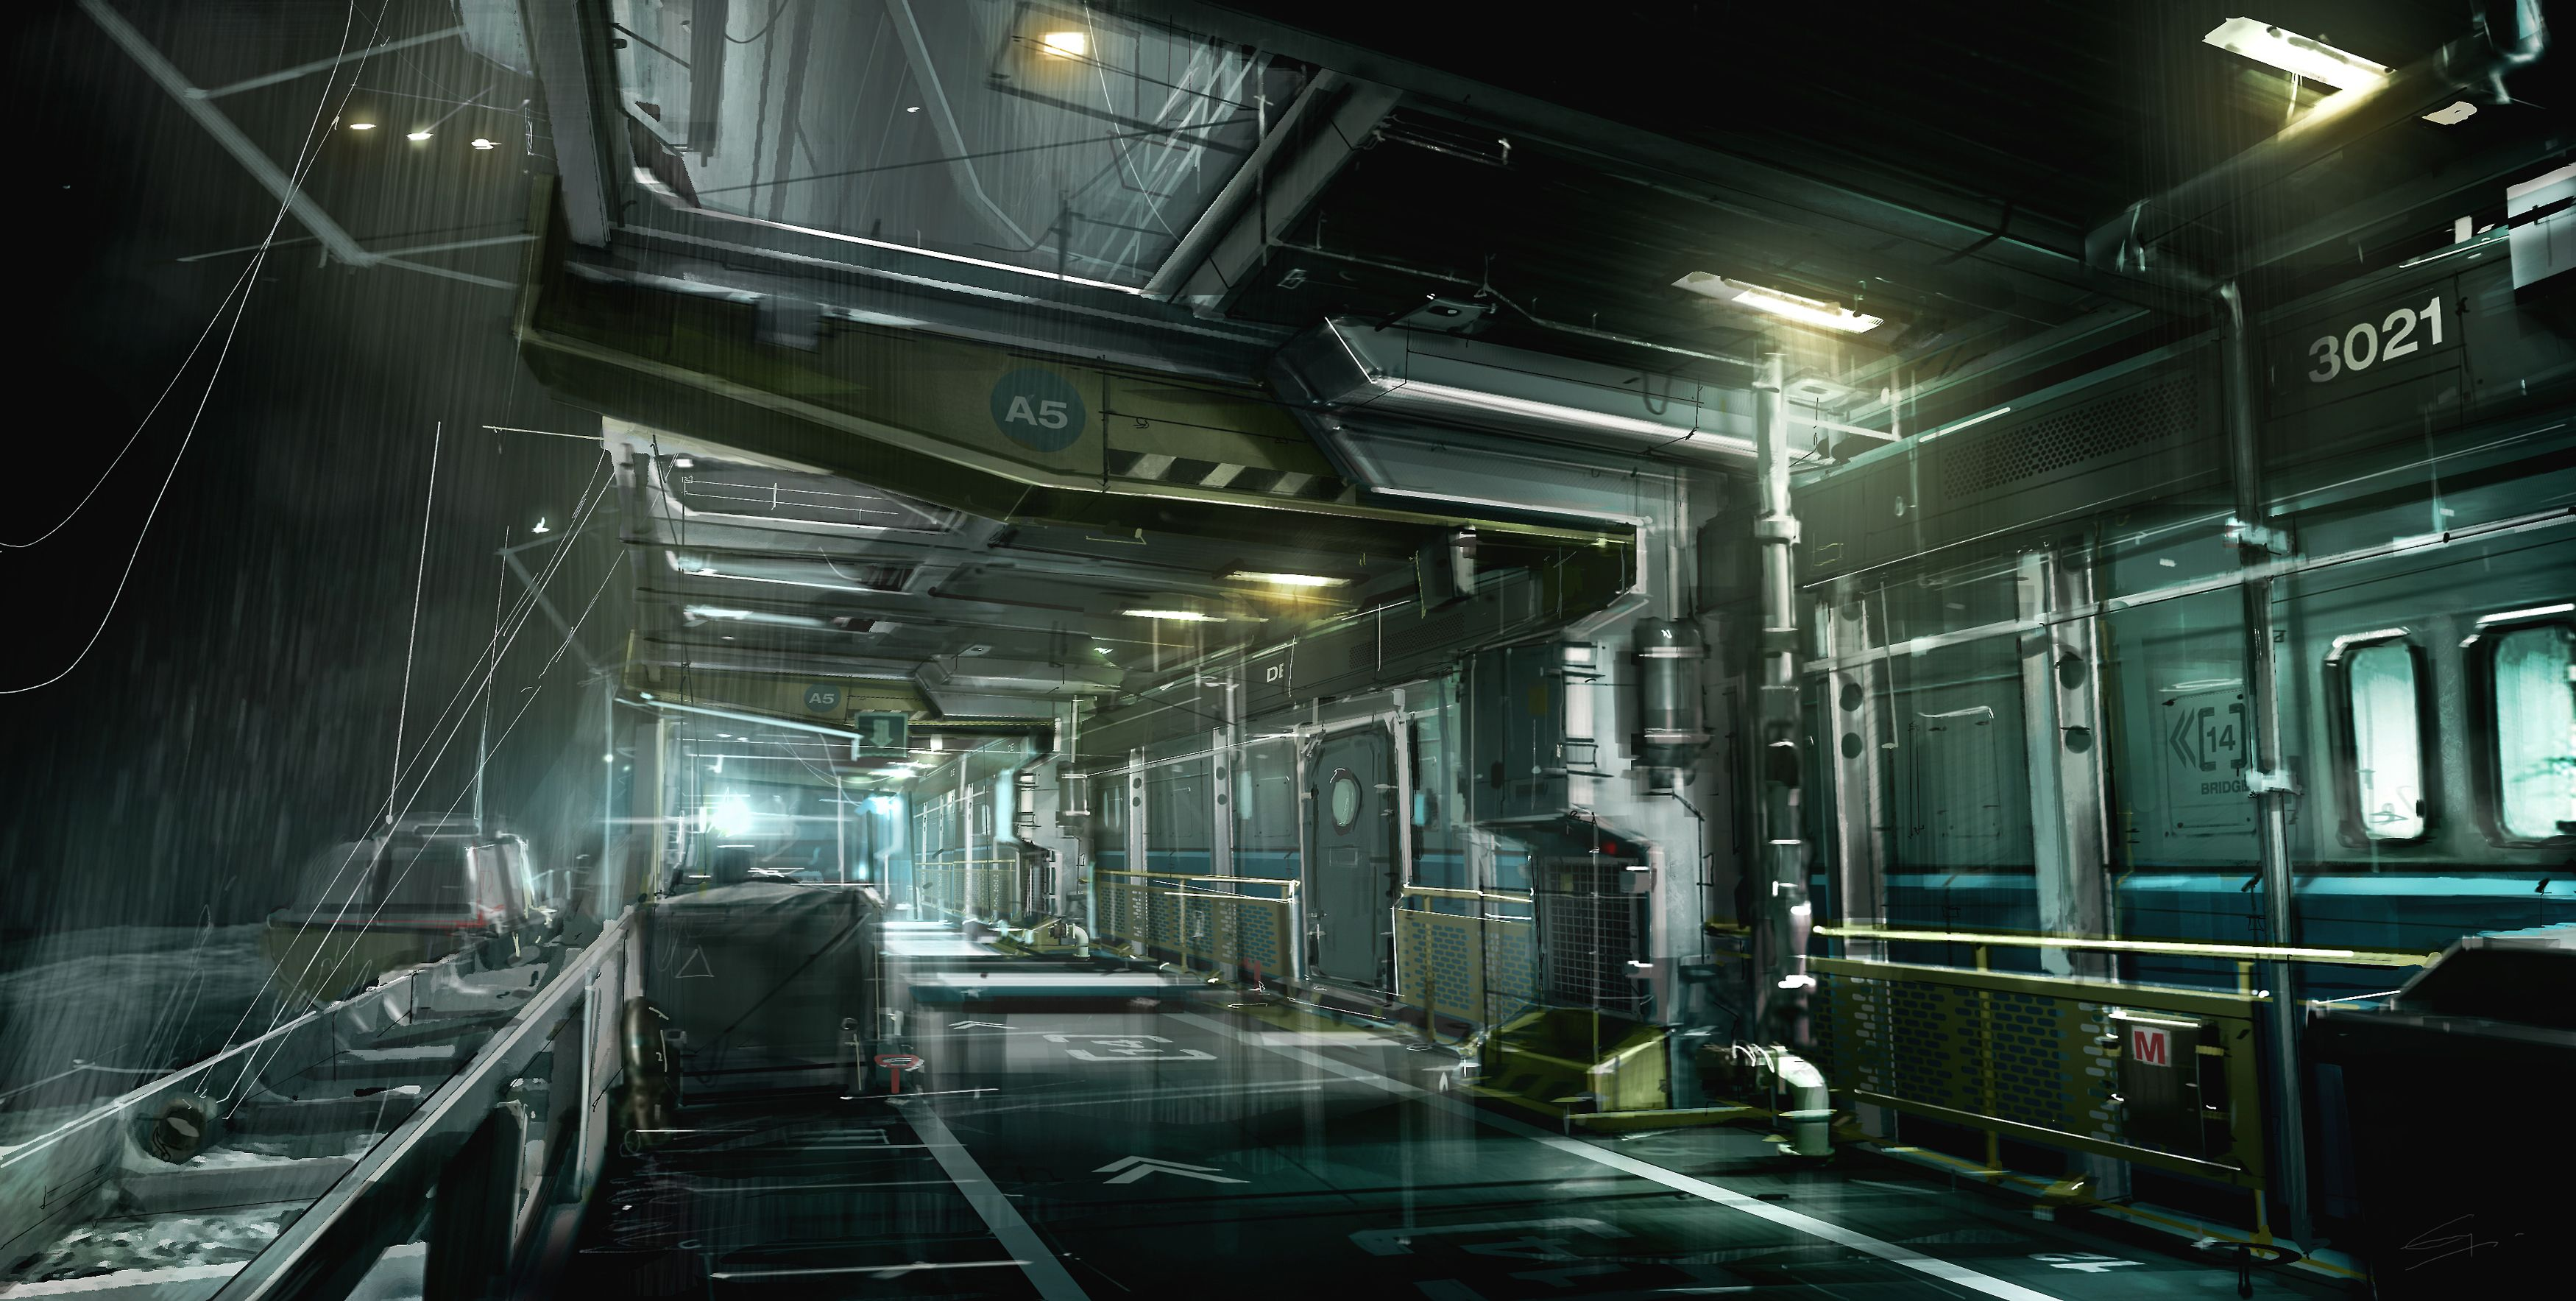 Sci Fi Space Station Interior Fantasy Sci Fi Wallpaper